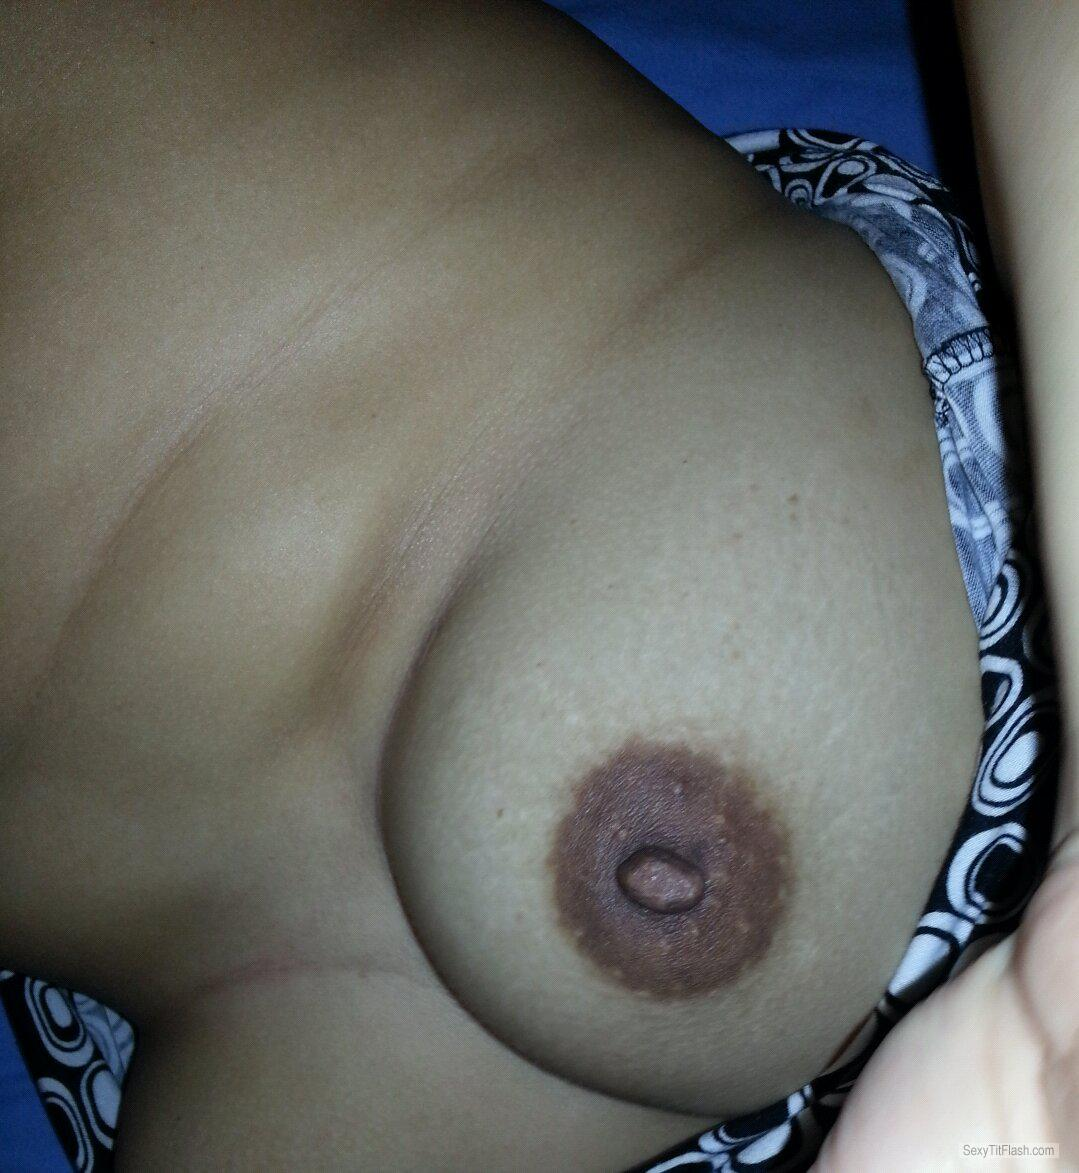 Medium Tits Of My Wife Thai Smile